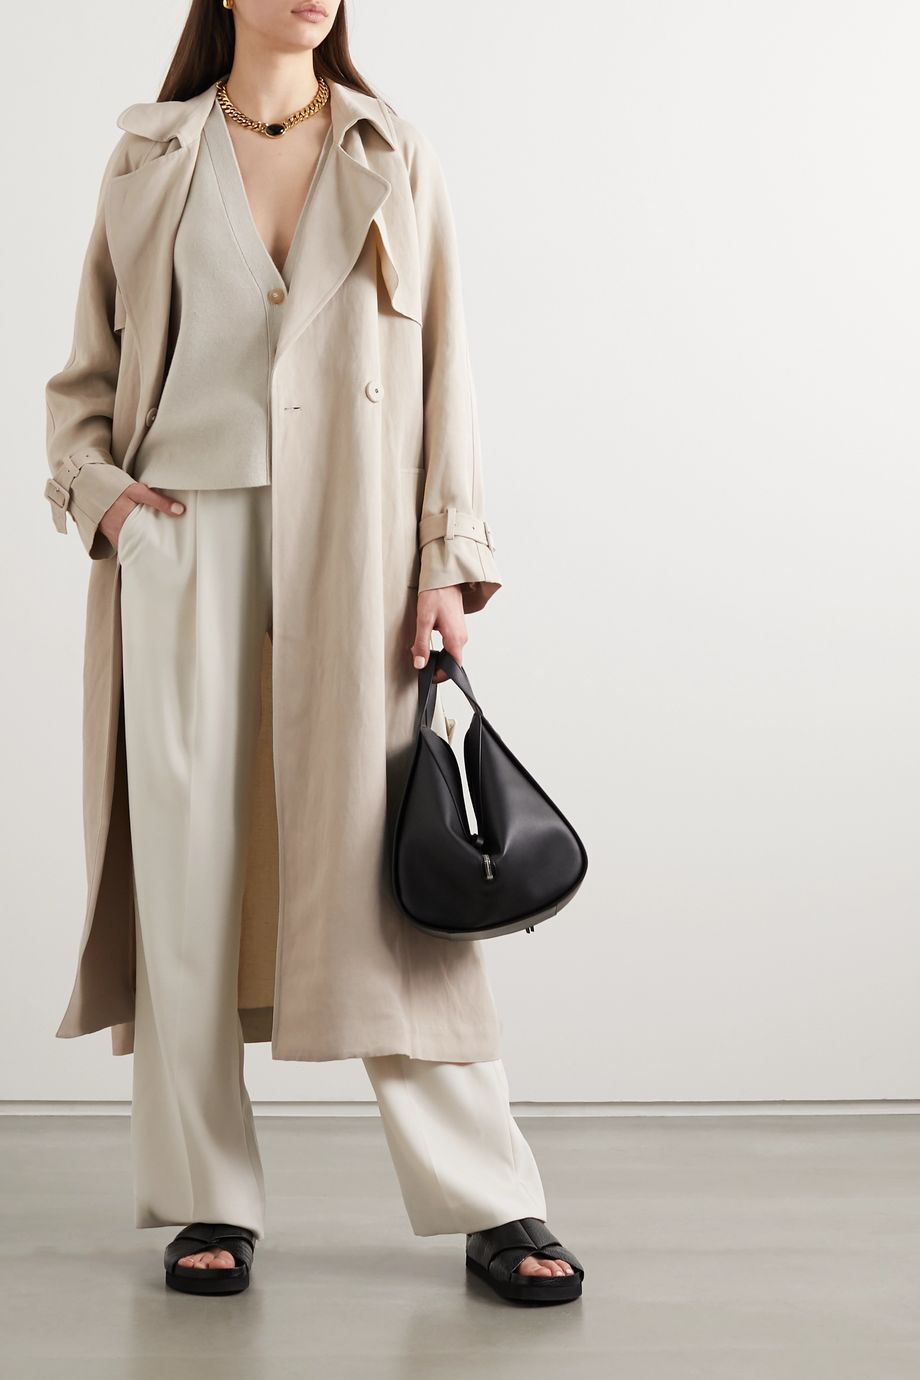 Co Woven trench coat